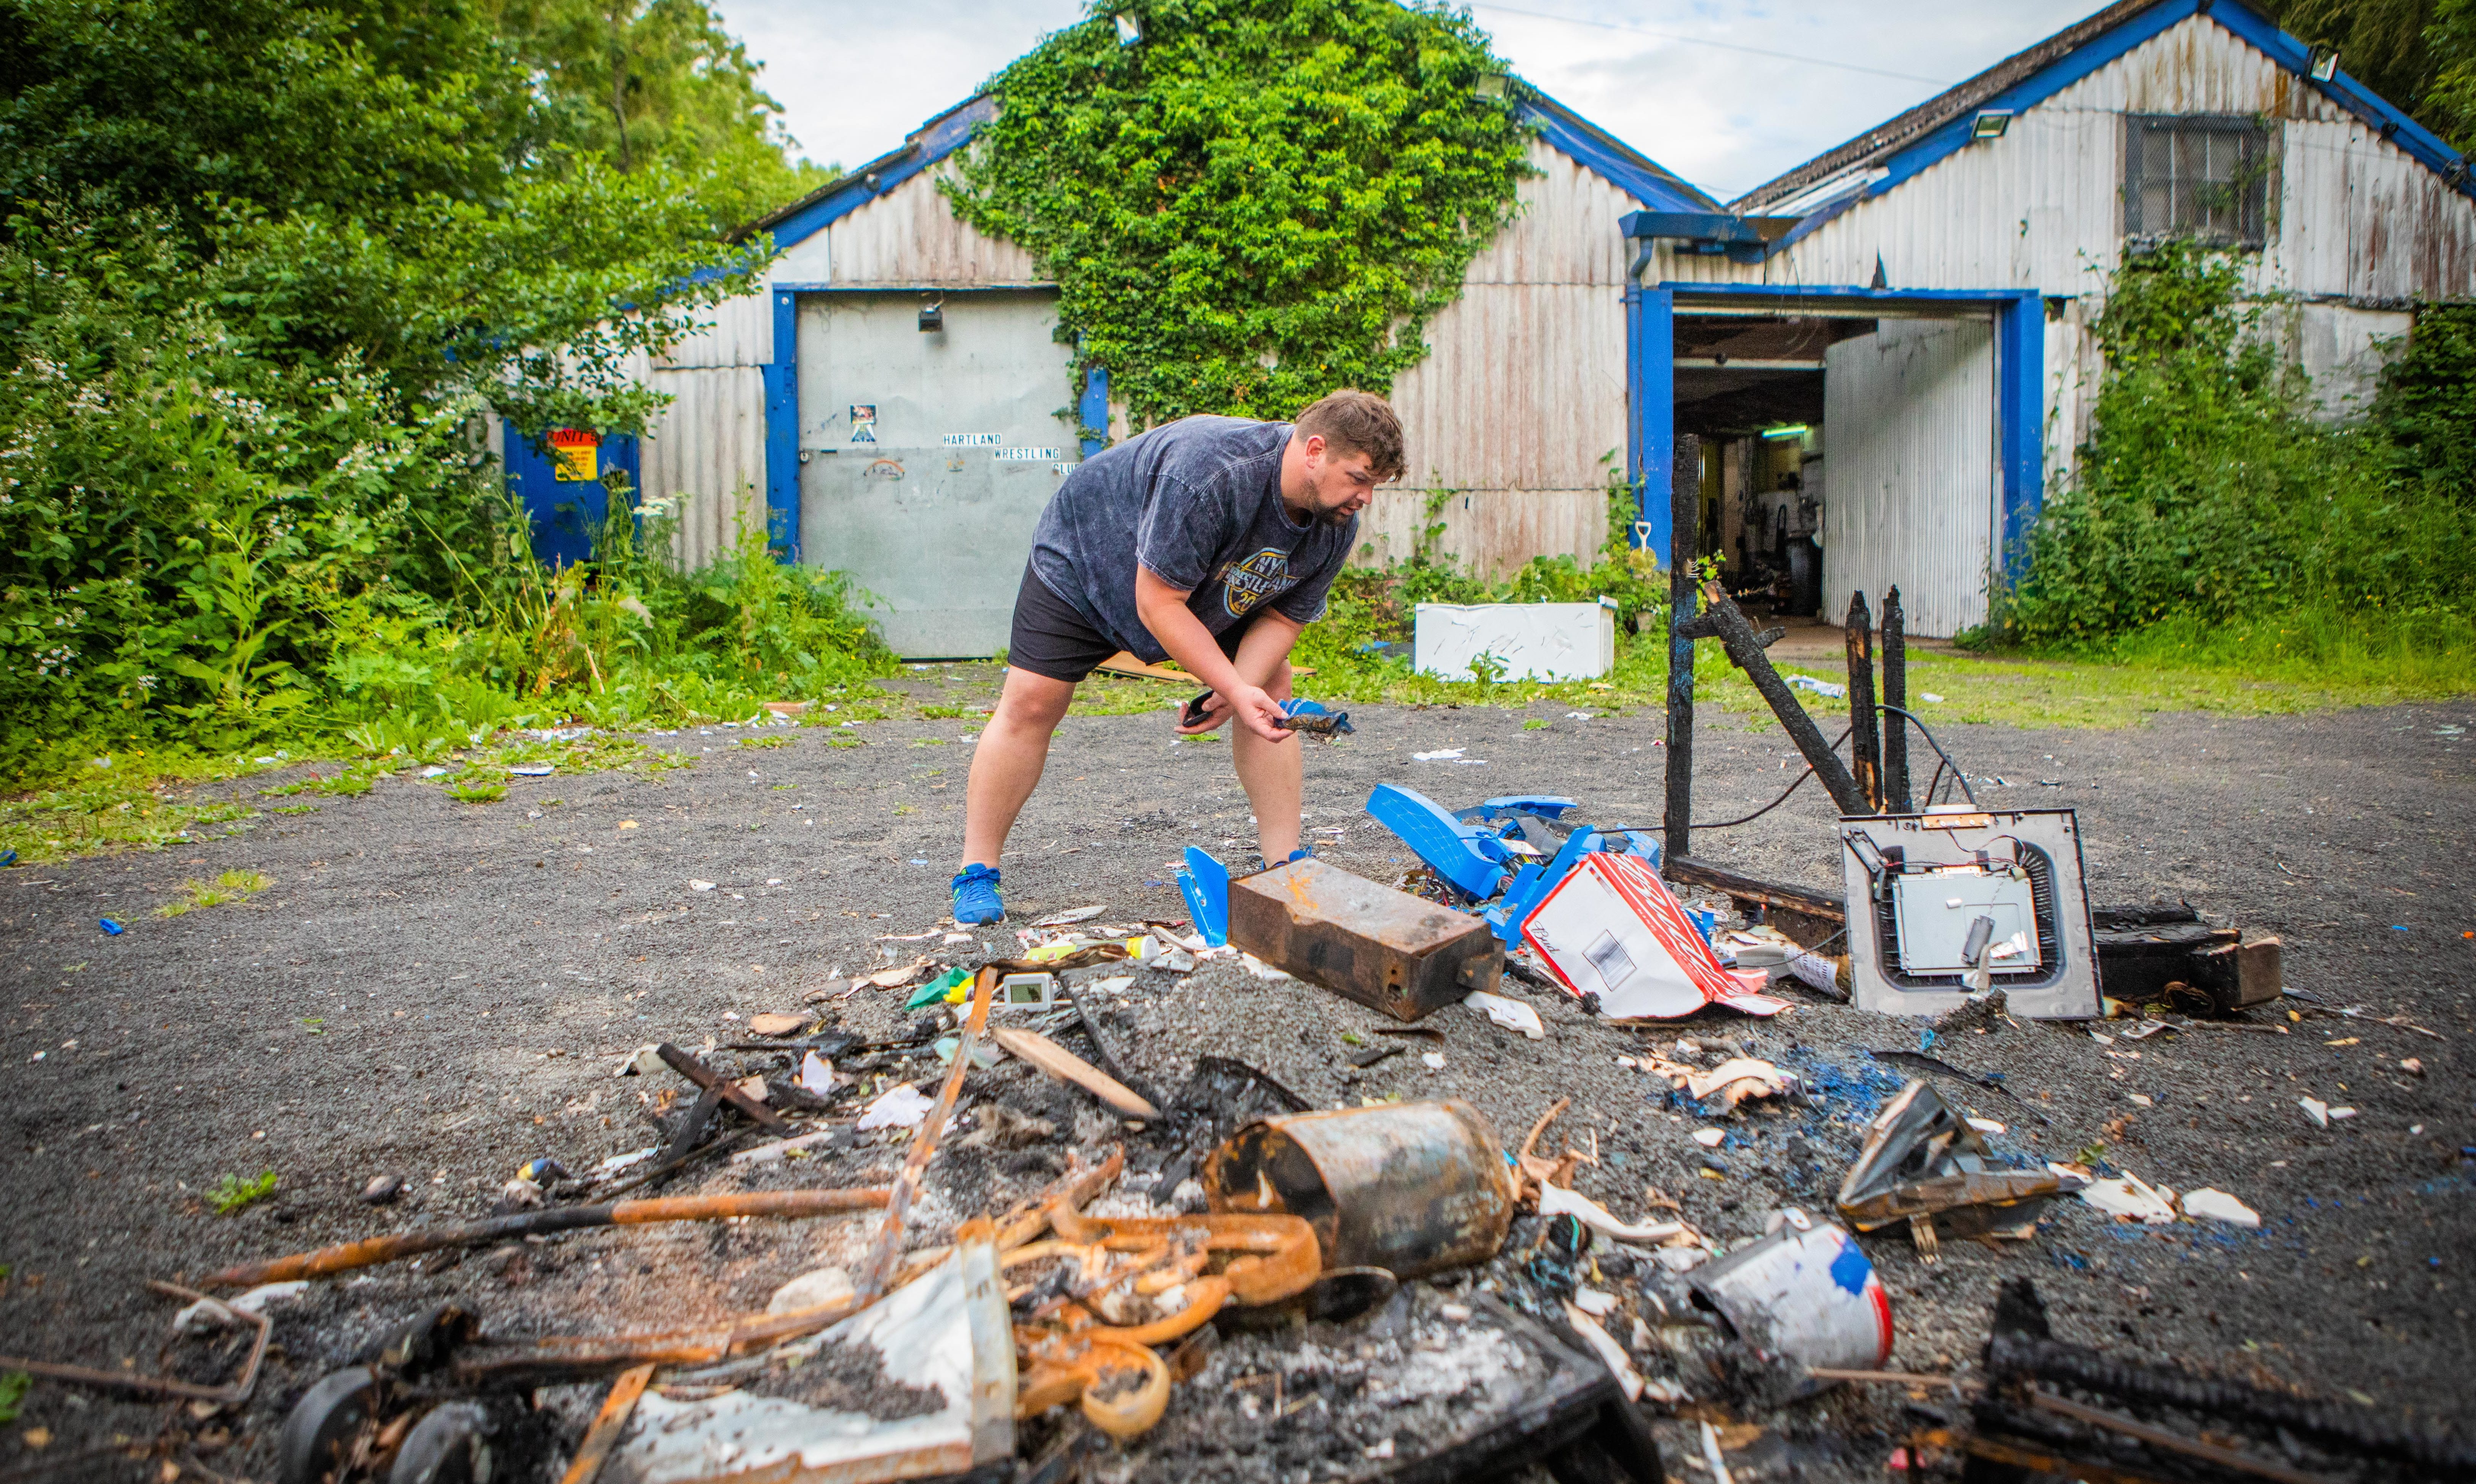 David Low looks through the damage and burned objects. Hartland Wrestling Club, Welton Road, Blairgowrie.